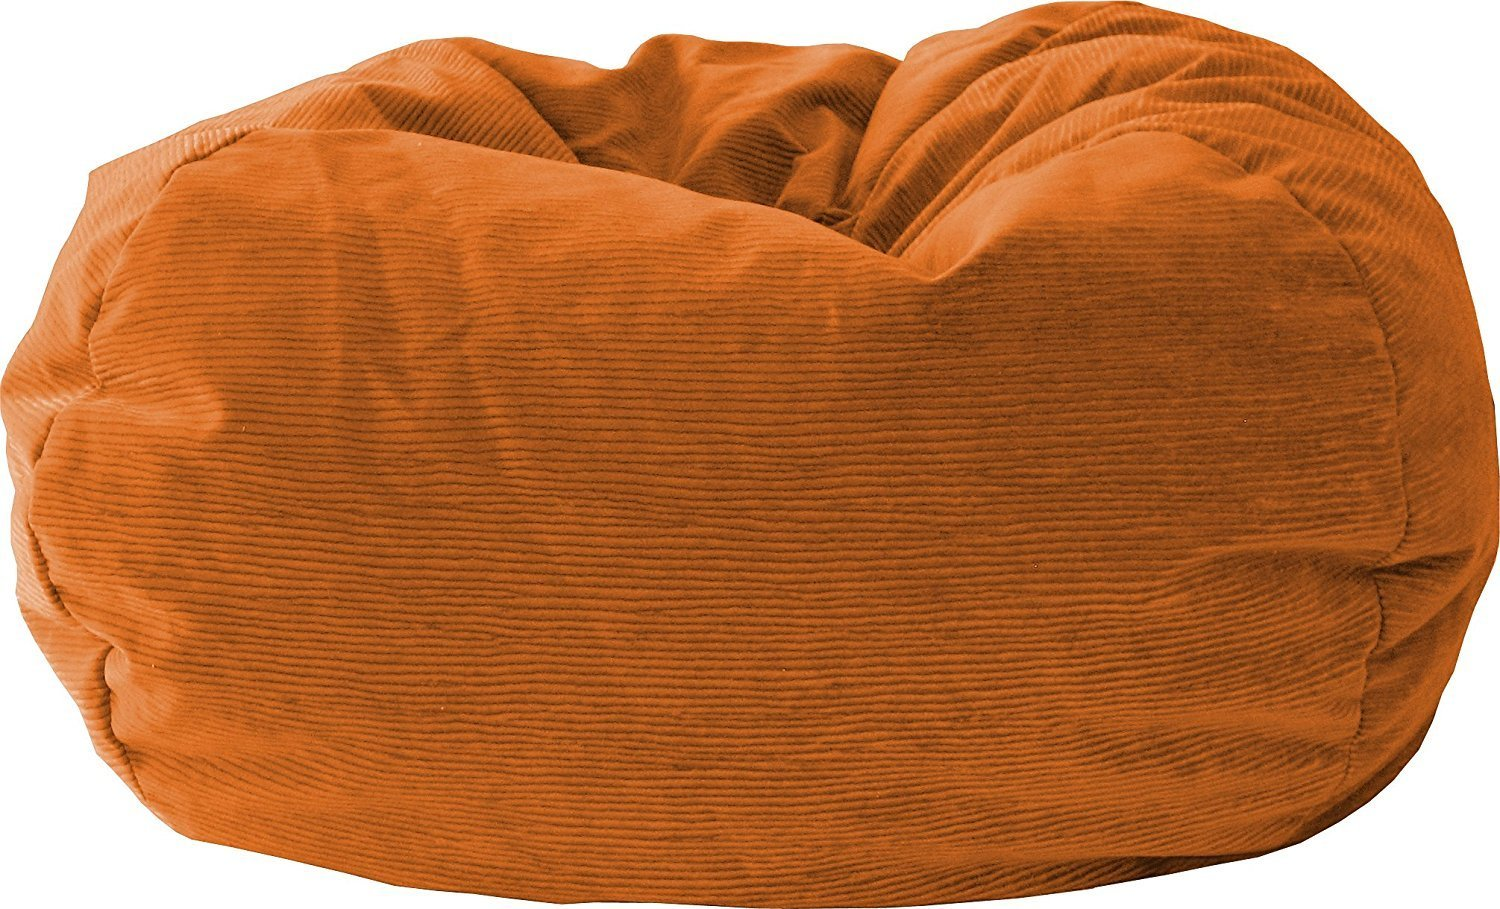 Xxl Bean Bag Chair Home Furniture Design